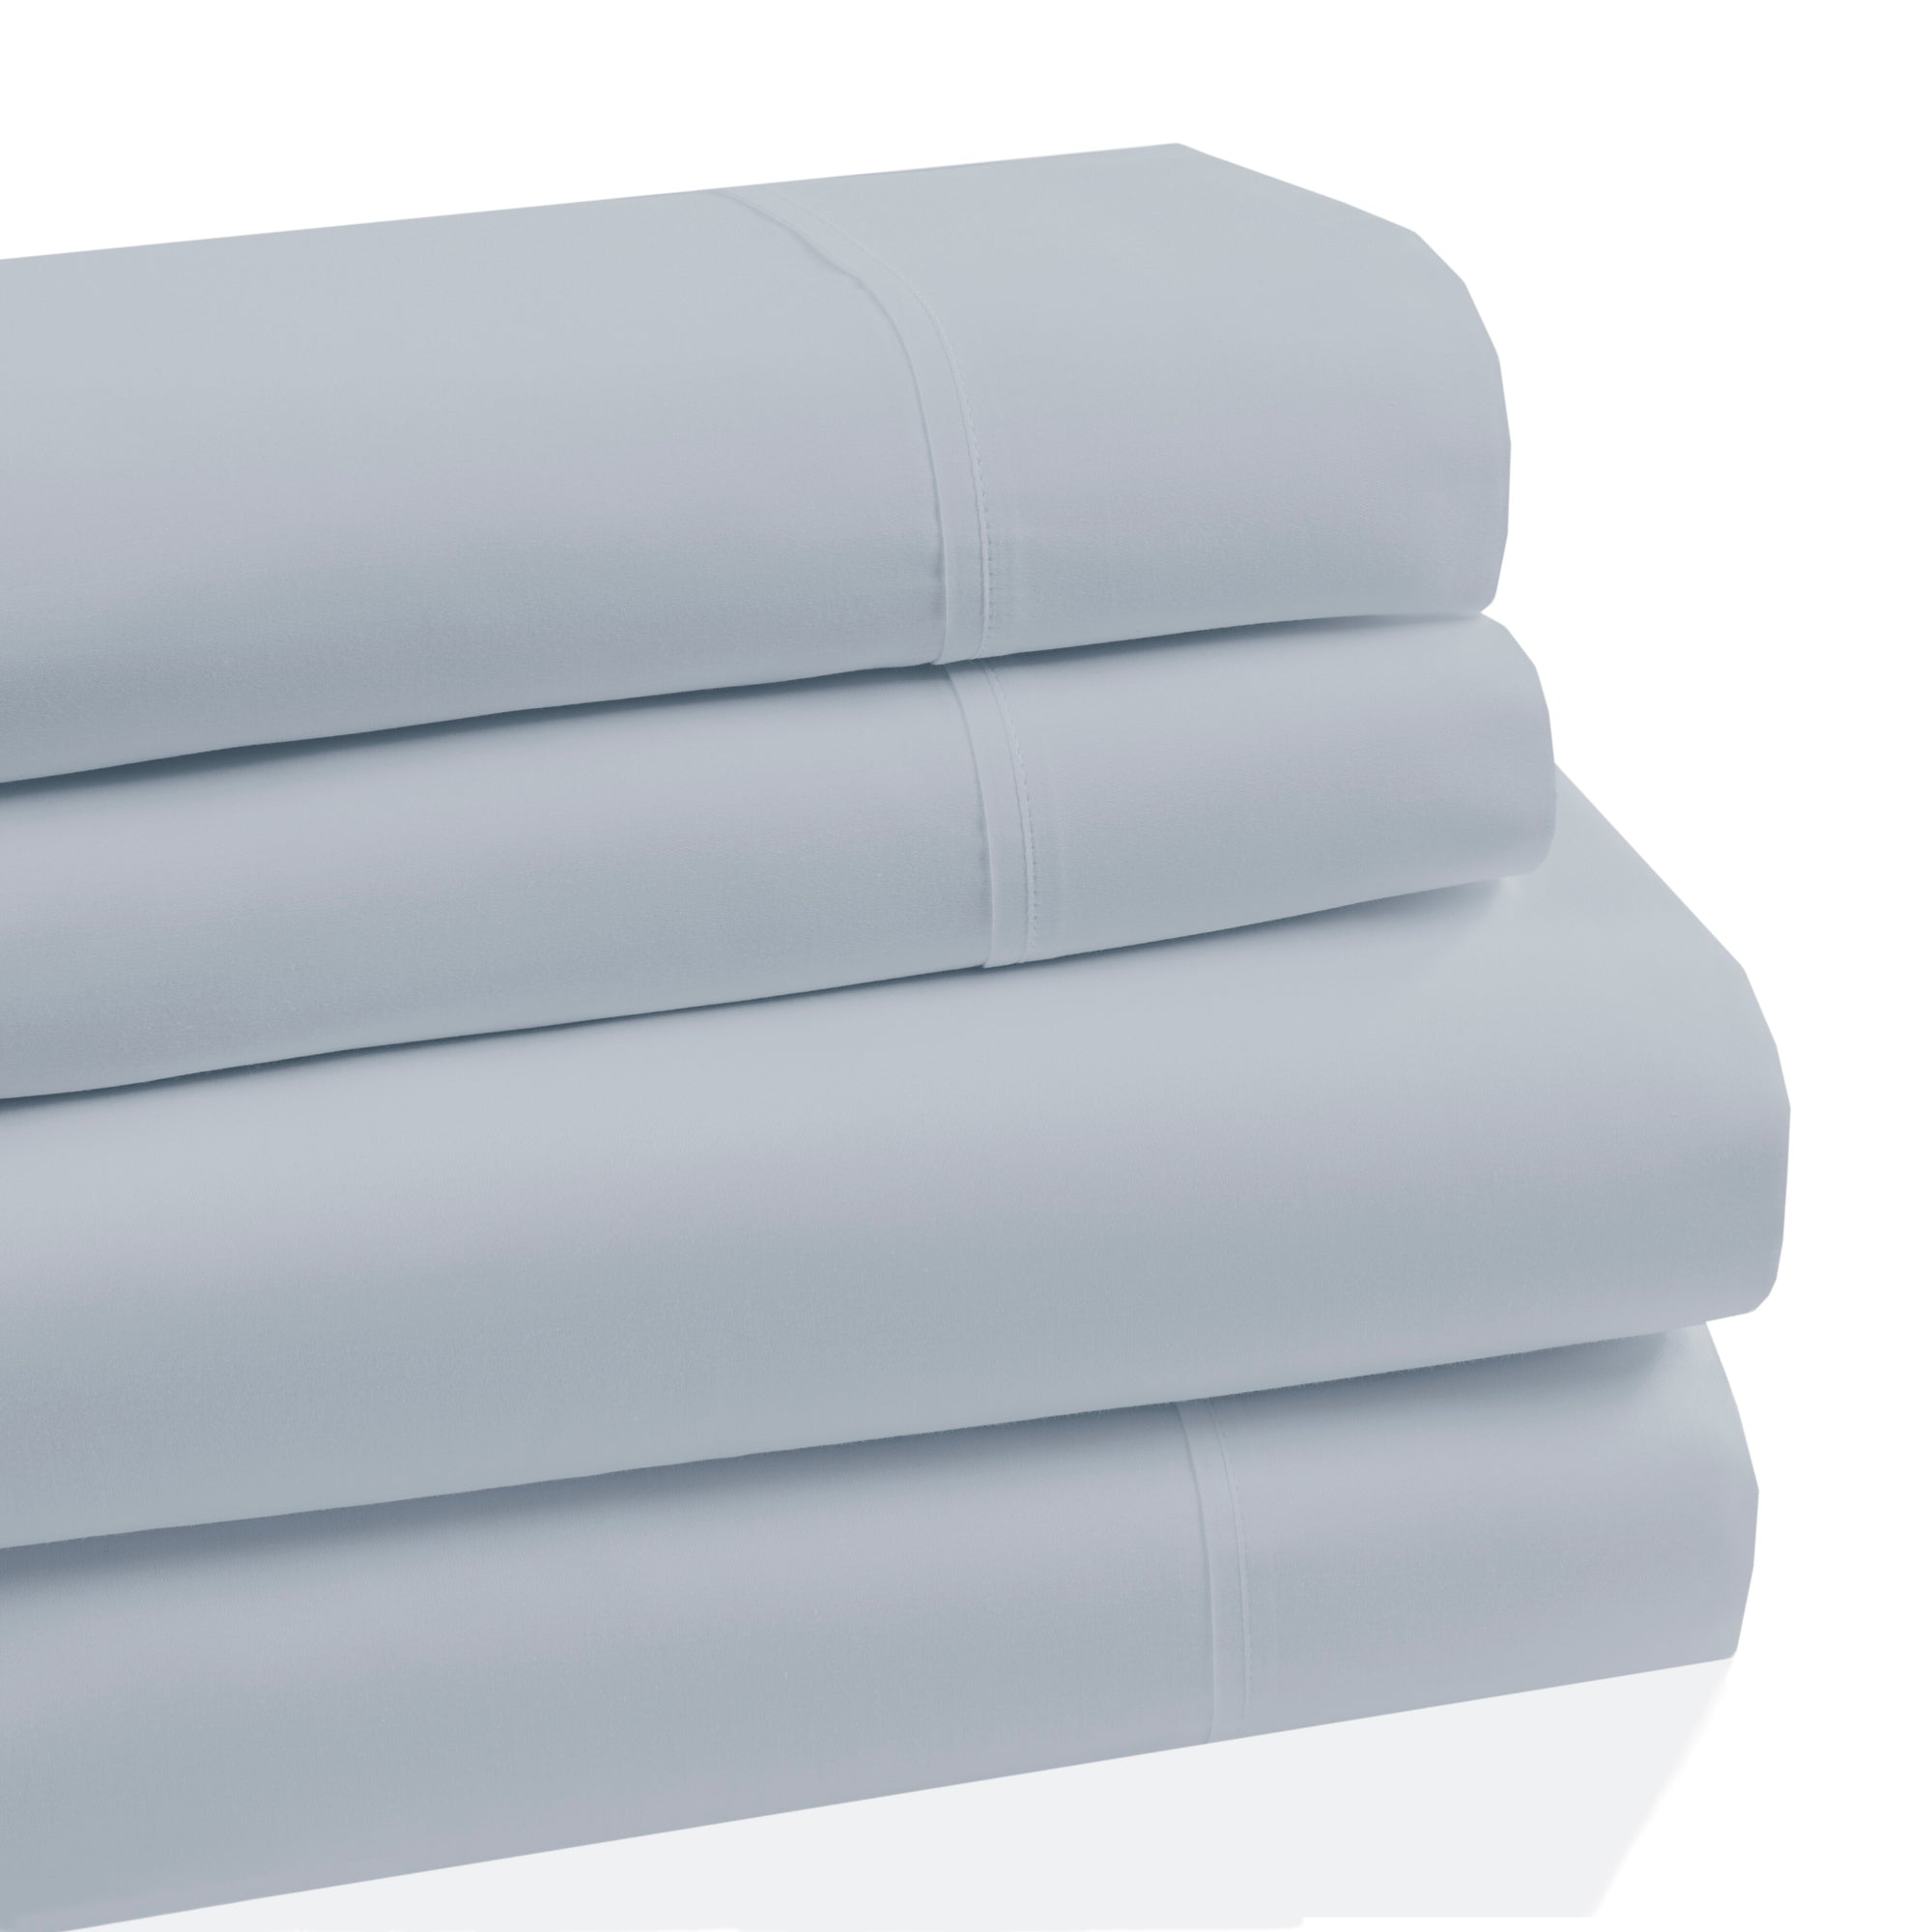 Lavender 500 Thread Count Cotton Lace Sateen Sheet Set King